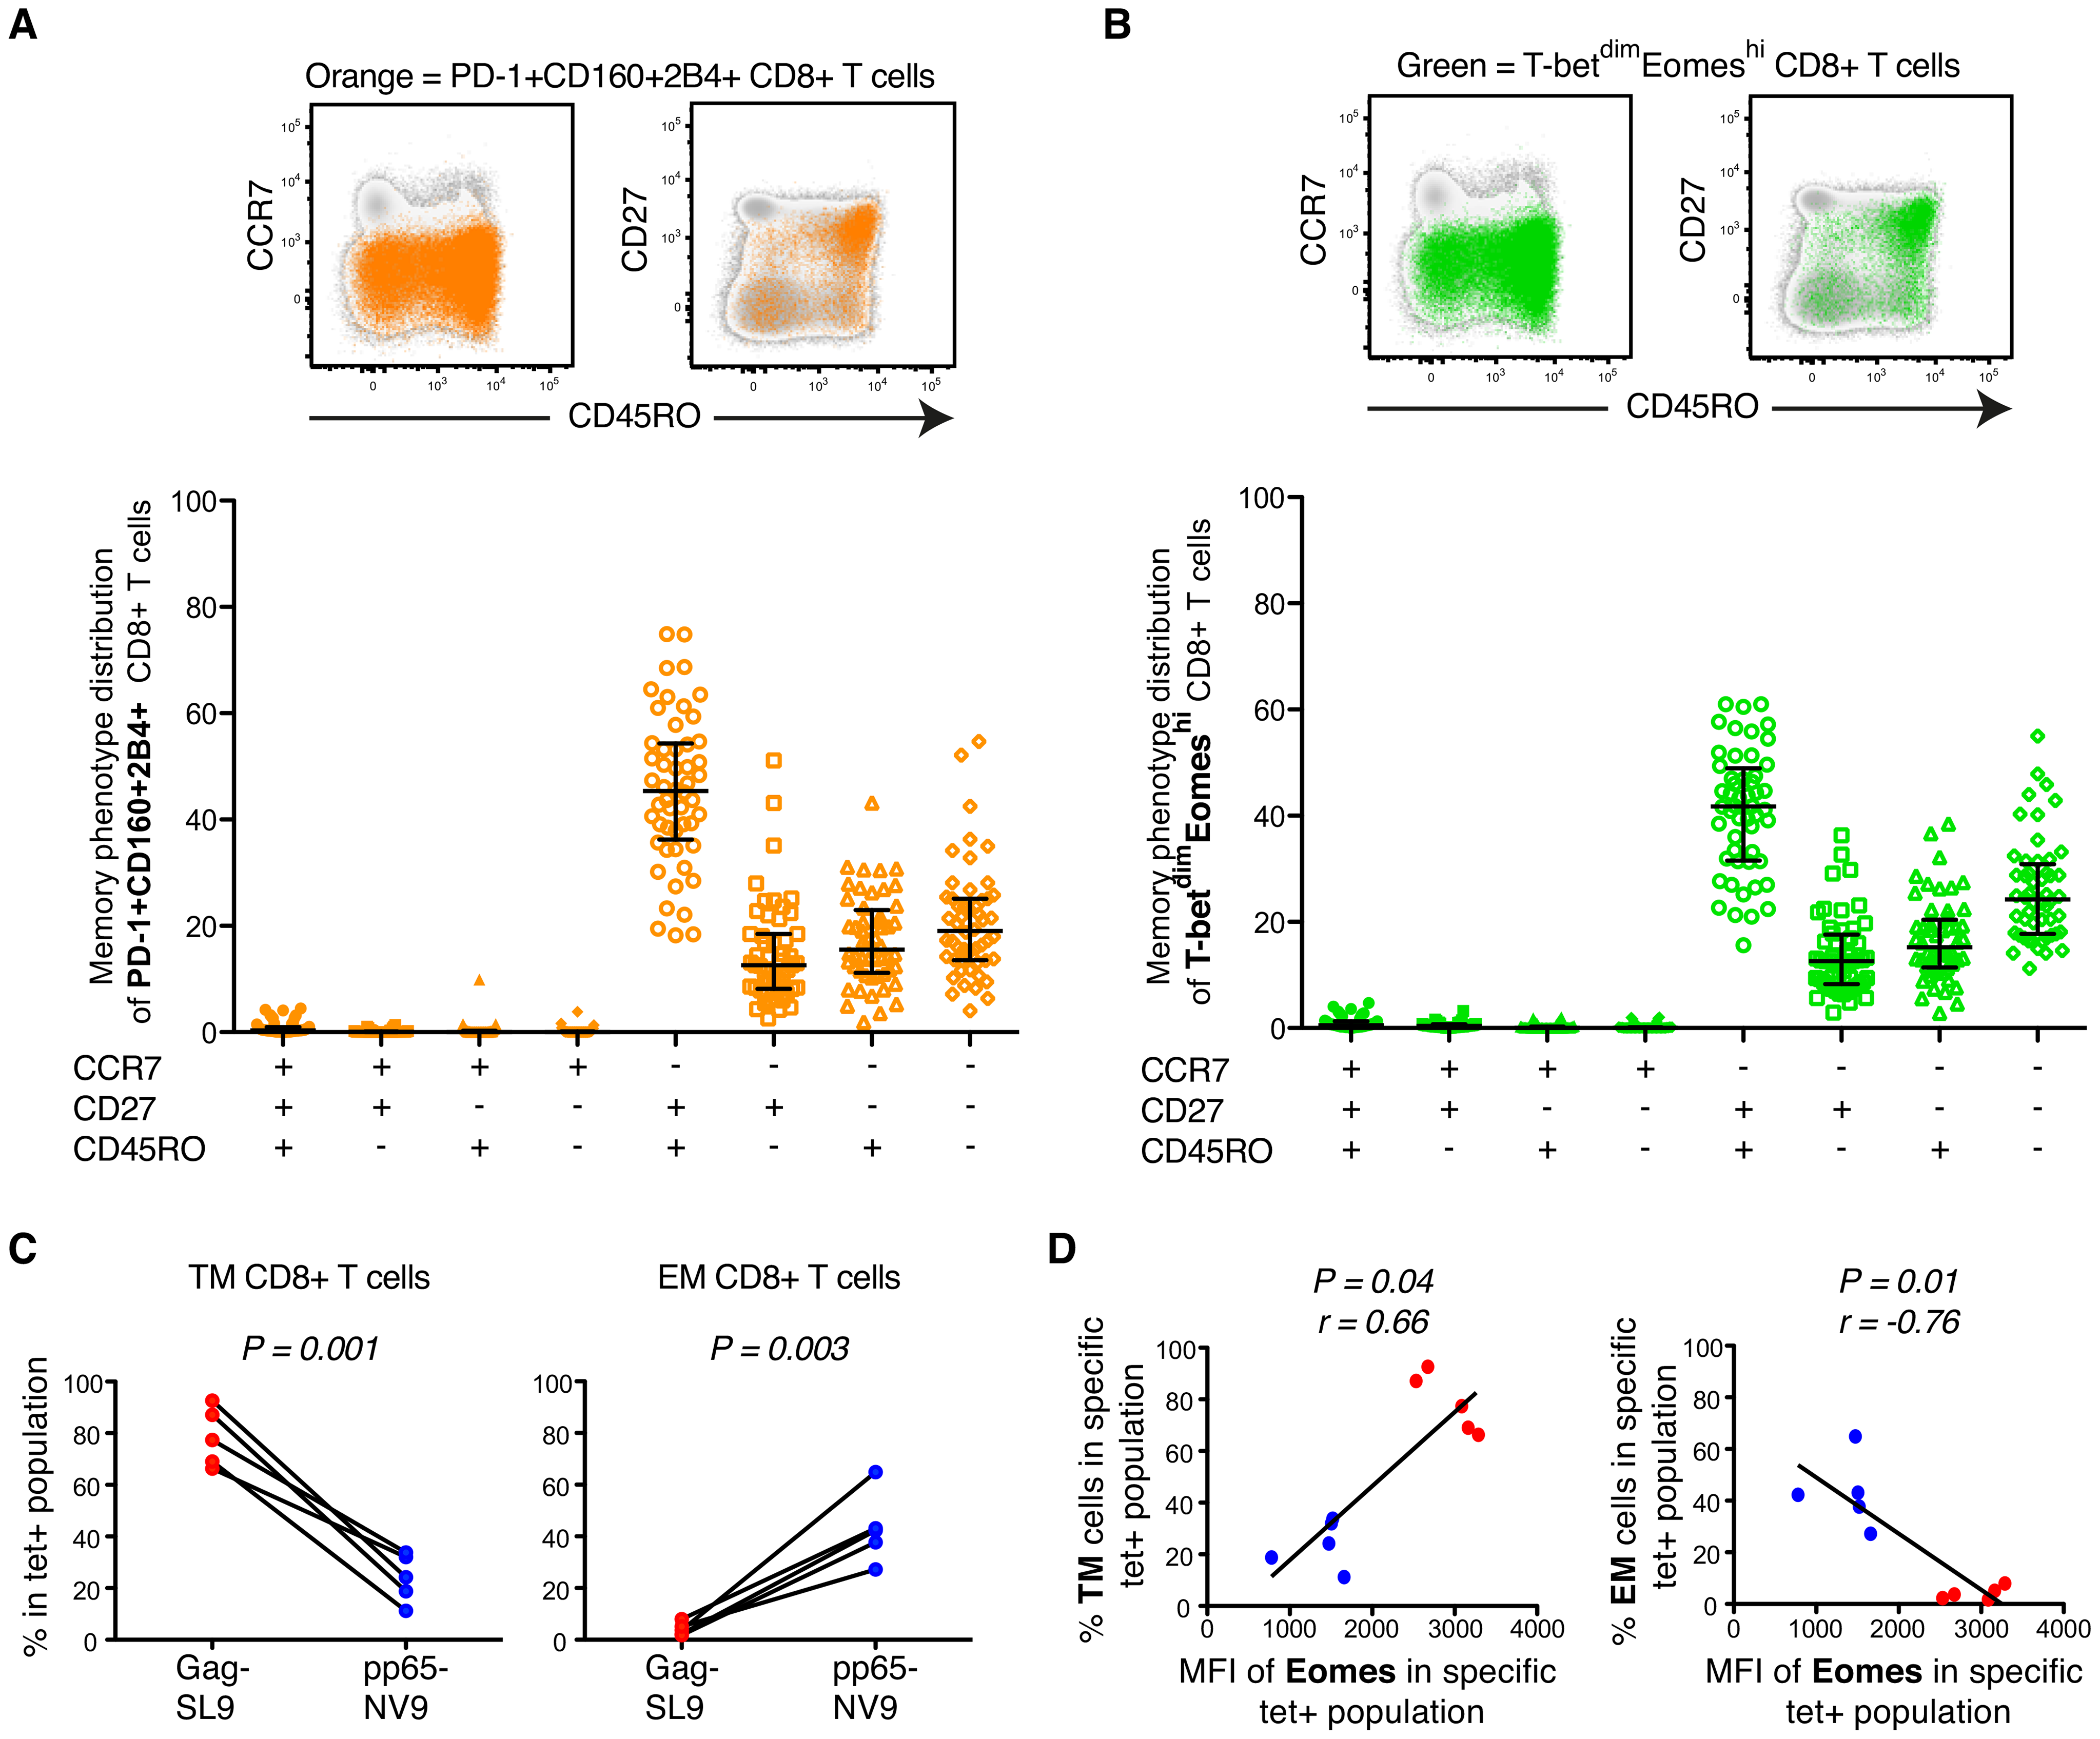 Phenotypic characterization of T-bet and Eomes expression in untreated HIV-infection.